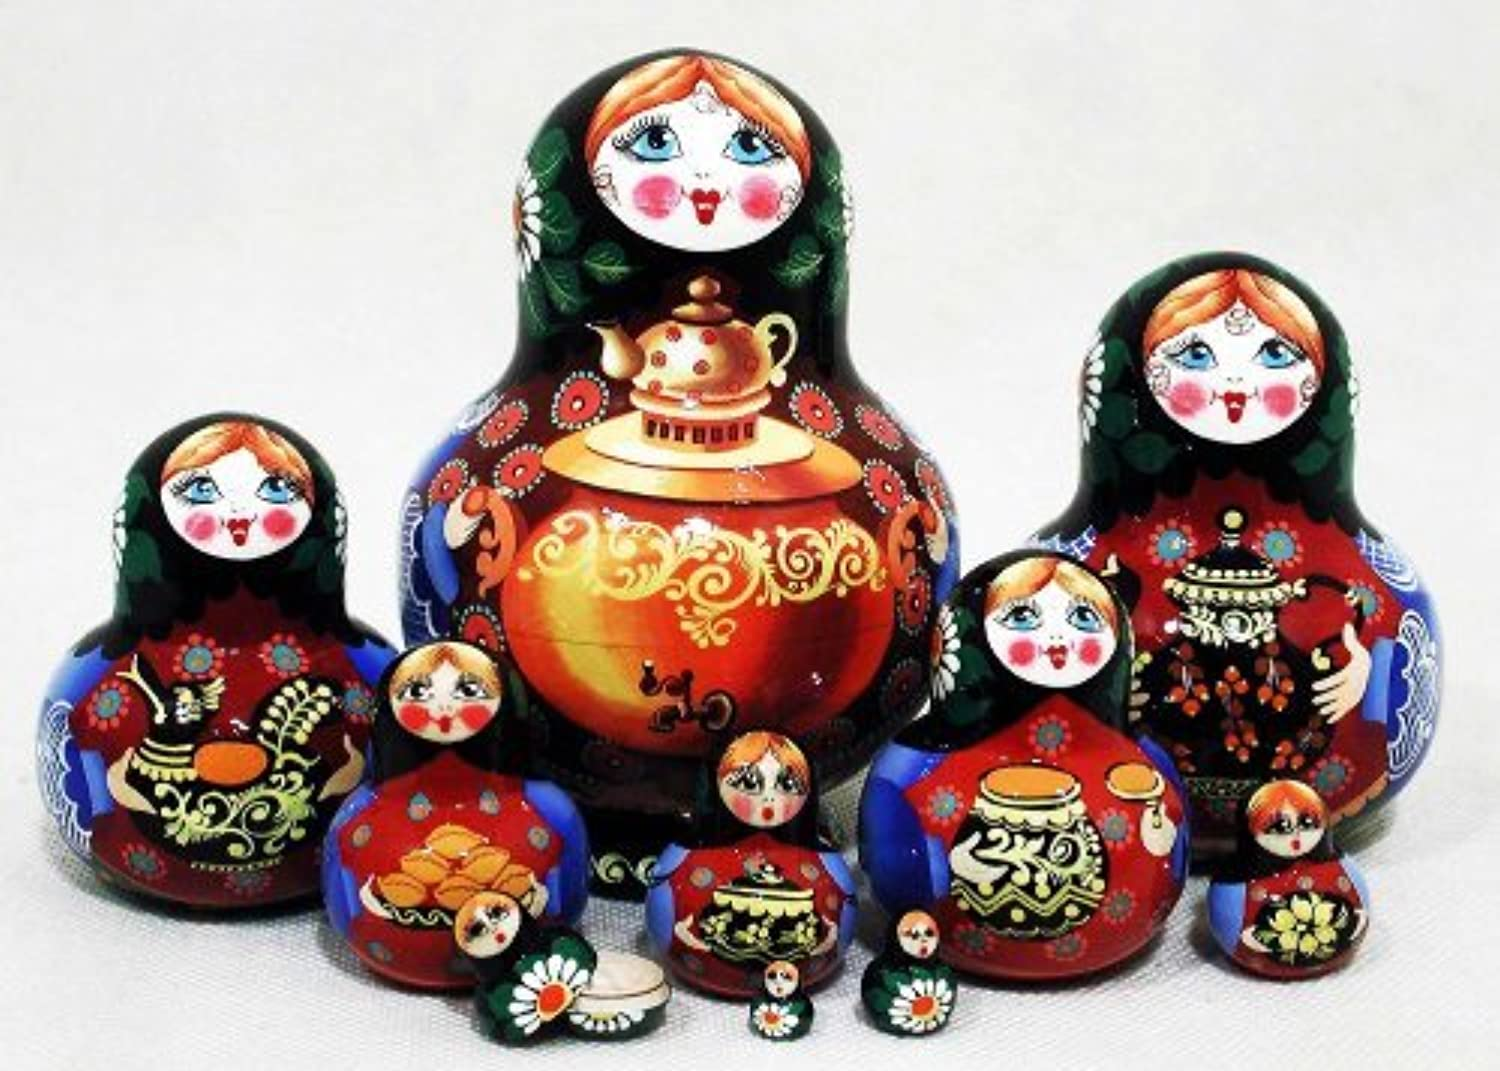 Samovar Russian Nesting Doll 10pc./5 by Golden Cockerel [並行輸入品]